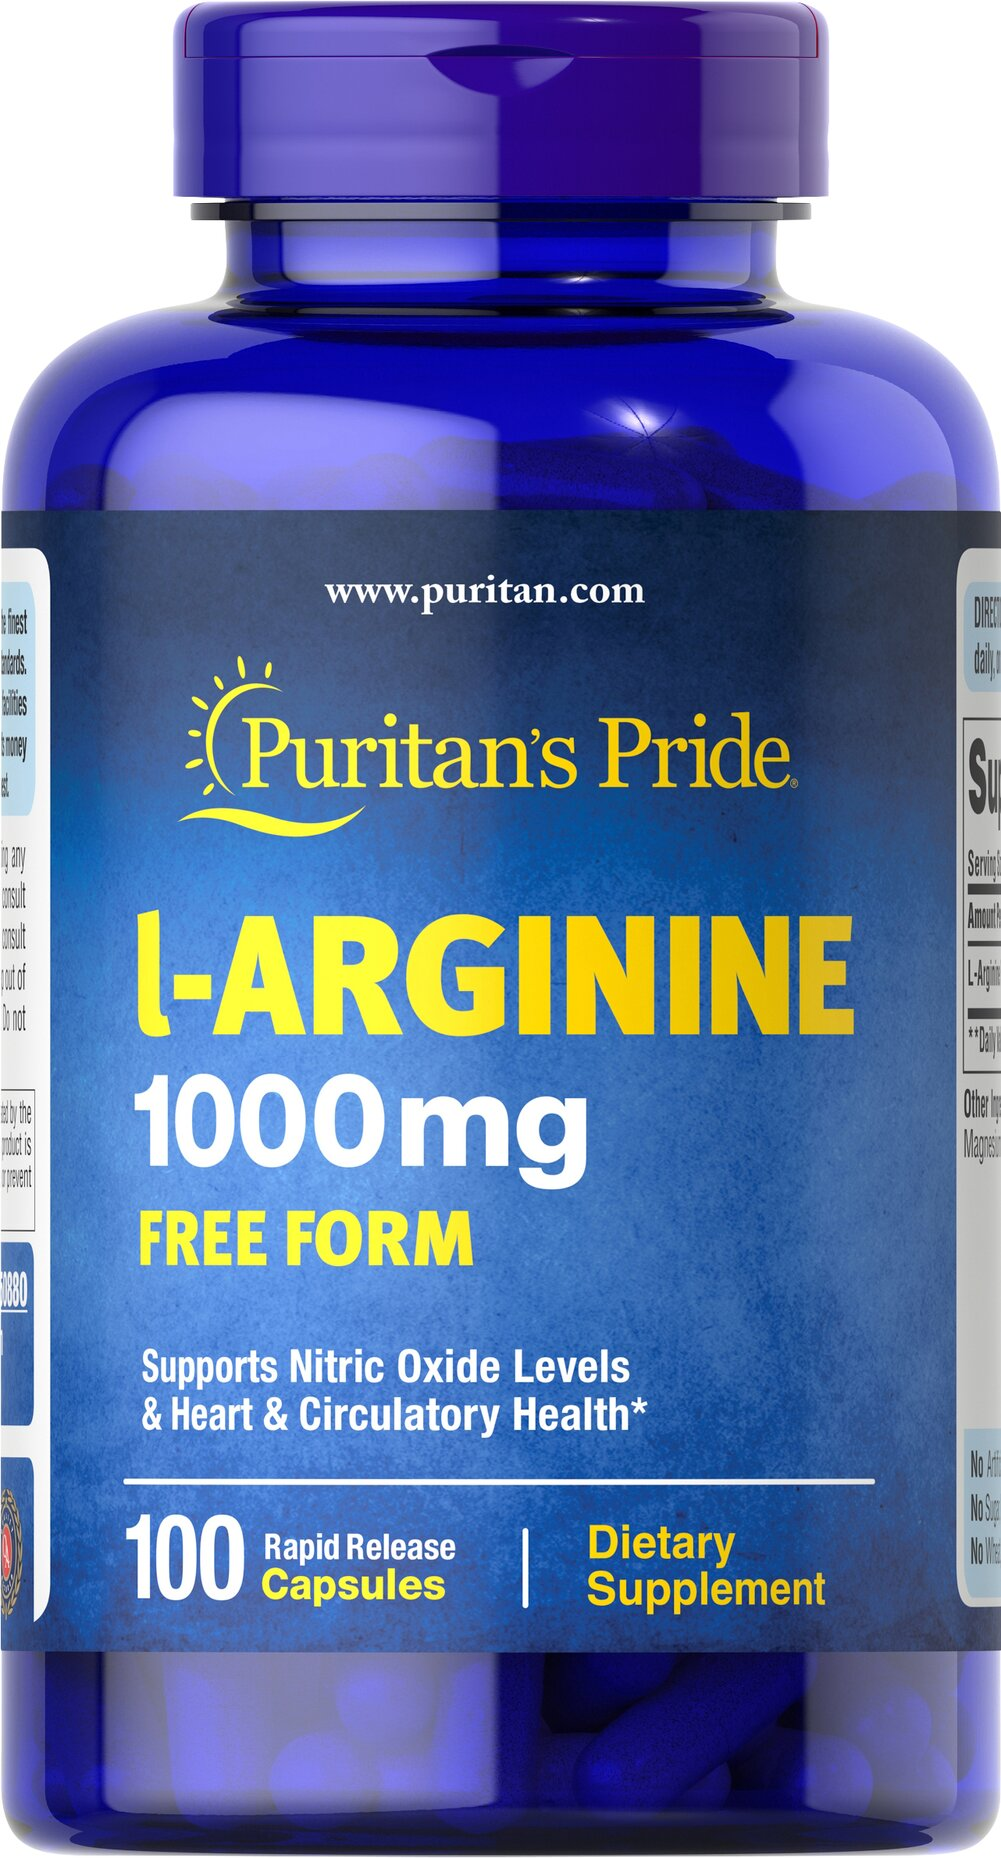 L-Arginine 1000 mg <p>Arginine is one of 20 amino acids, the building blocks of protein.** Arginine can serve as a source of energy, and is involved in various pathways throughout the body.** Arginine supports the effect of exercise and is one of the most important amino acids involved in immune function.** Adults can take one caplet daily. </p> 100 Capsules 1000 mg $20.99